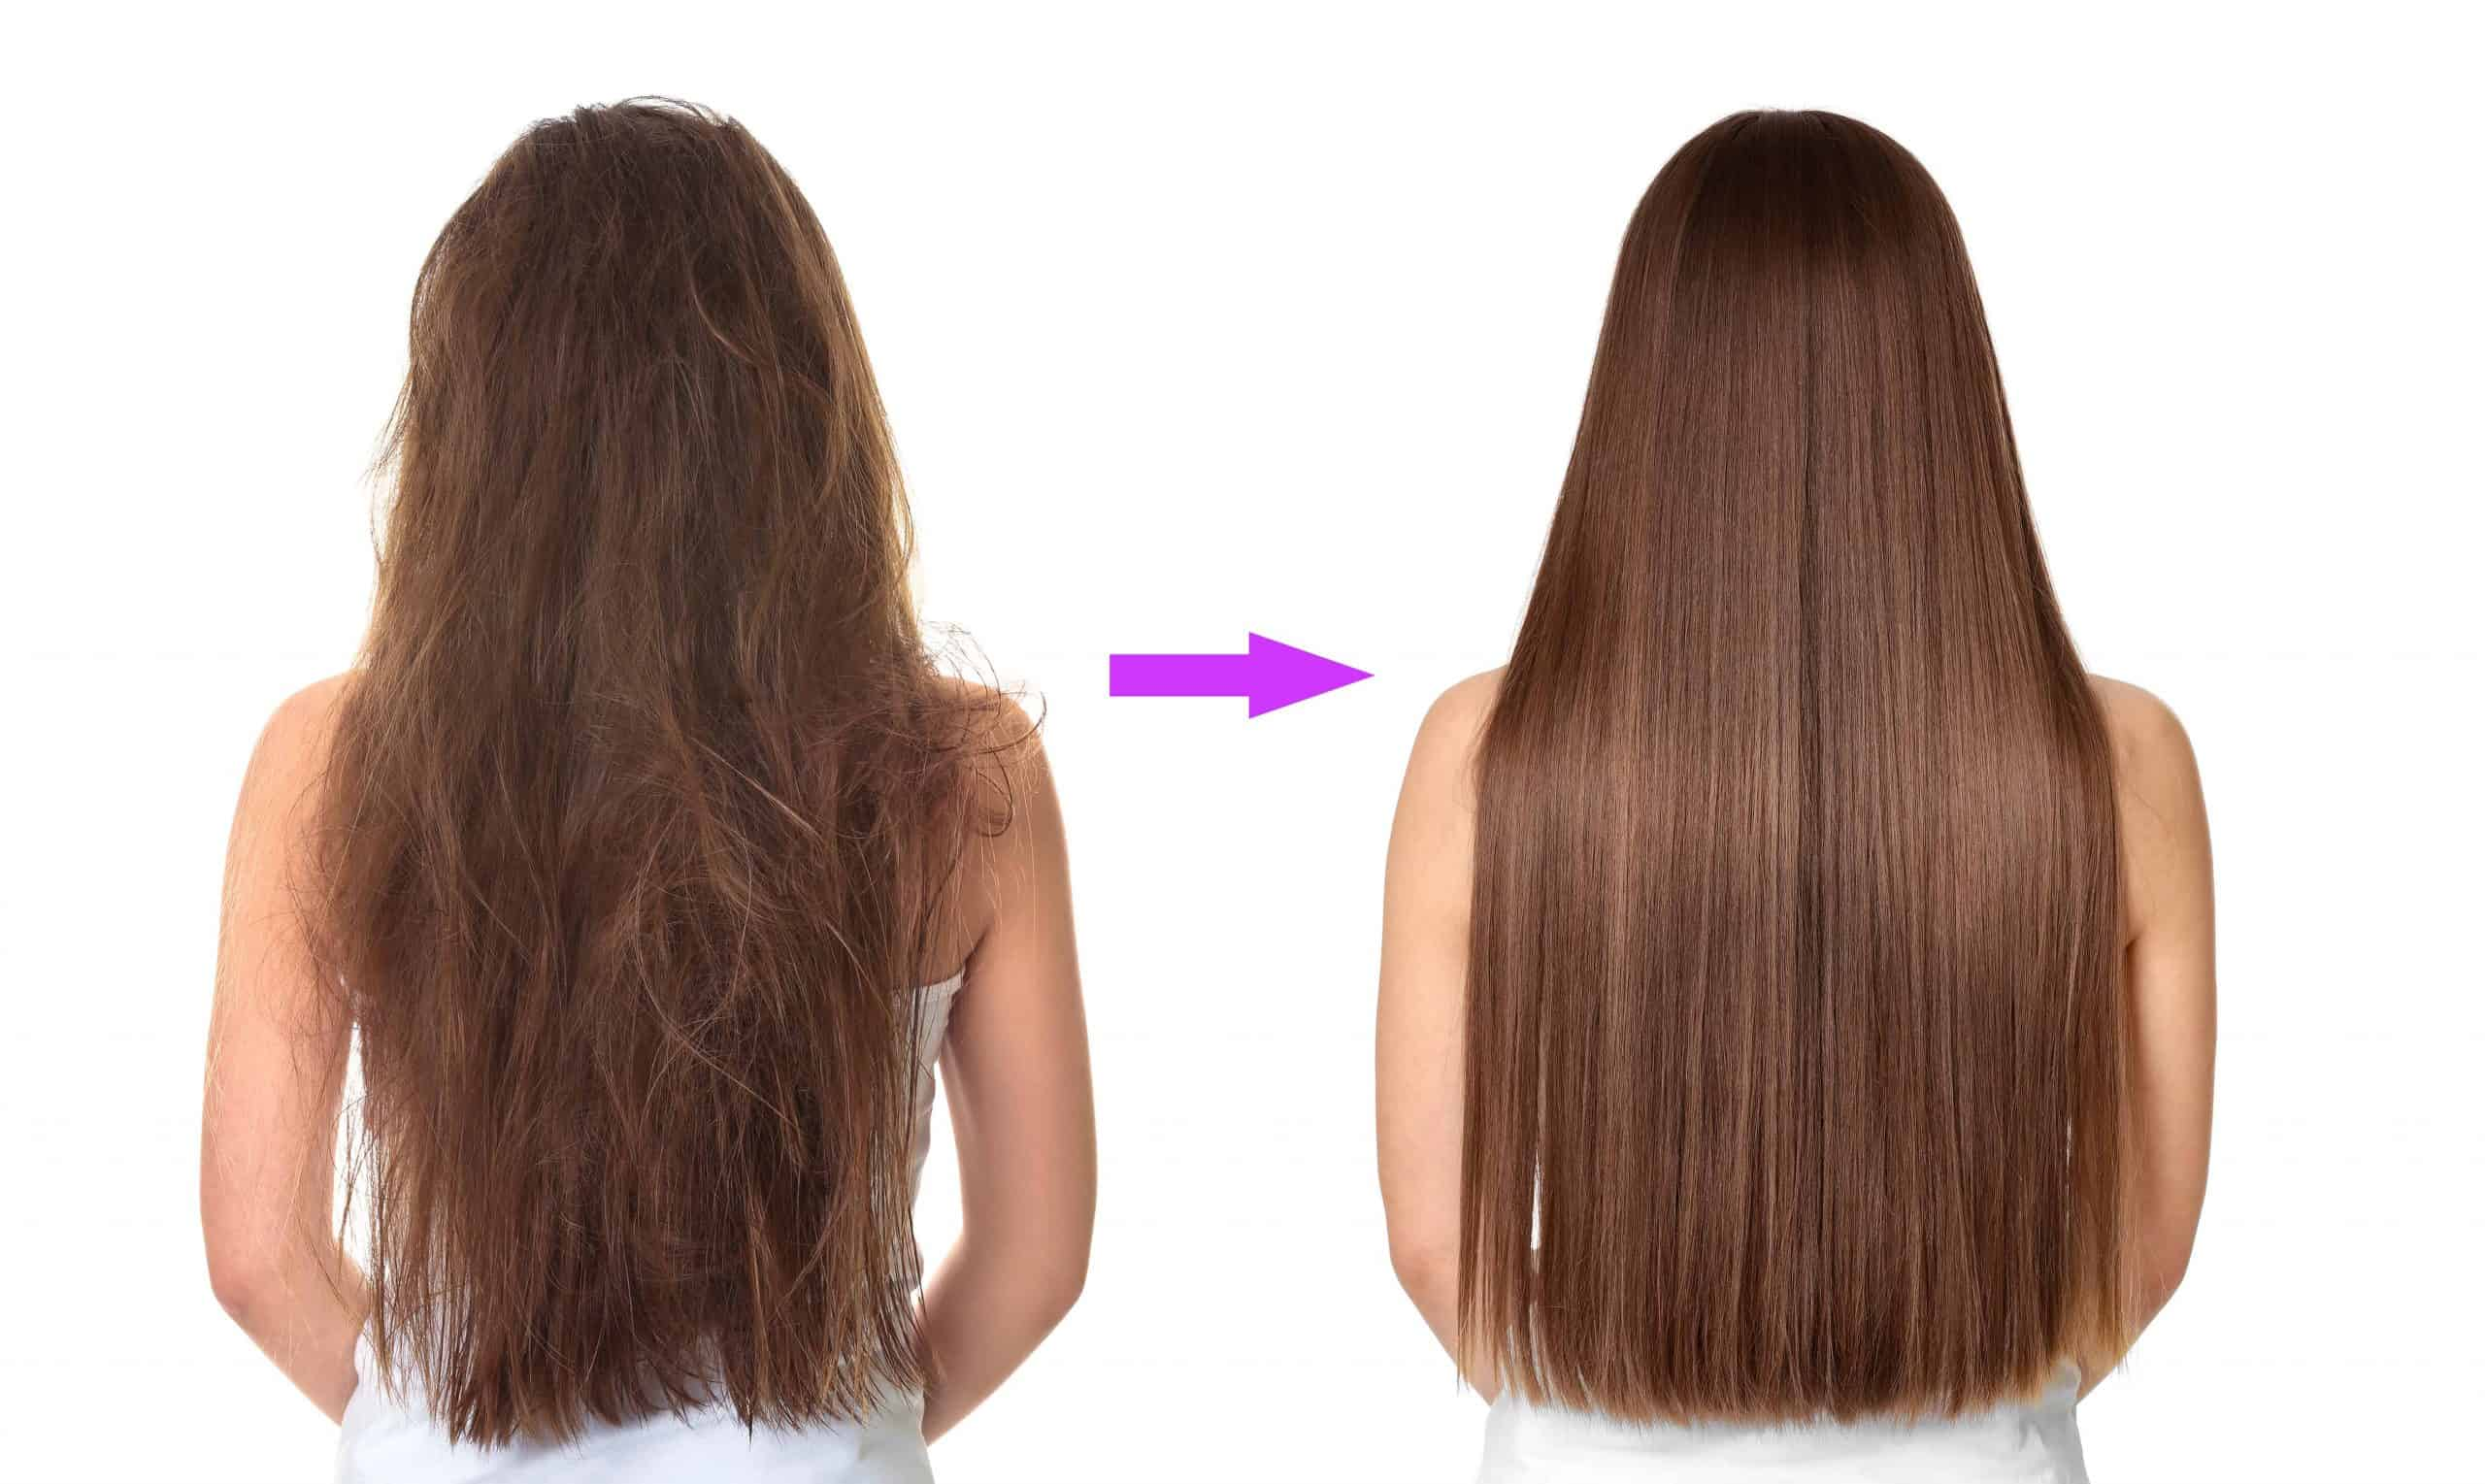 soft and silky hair naturally